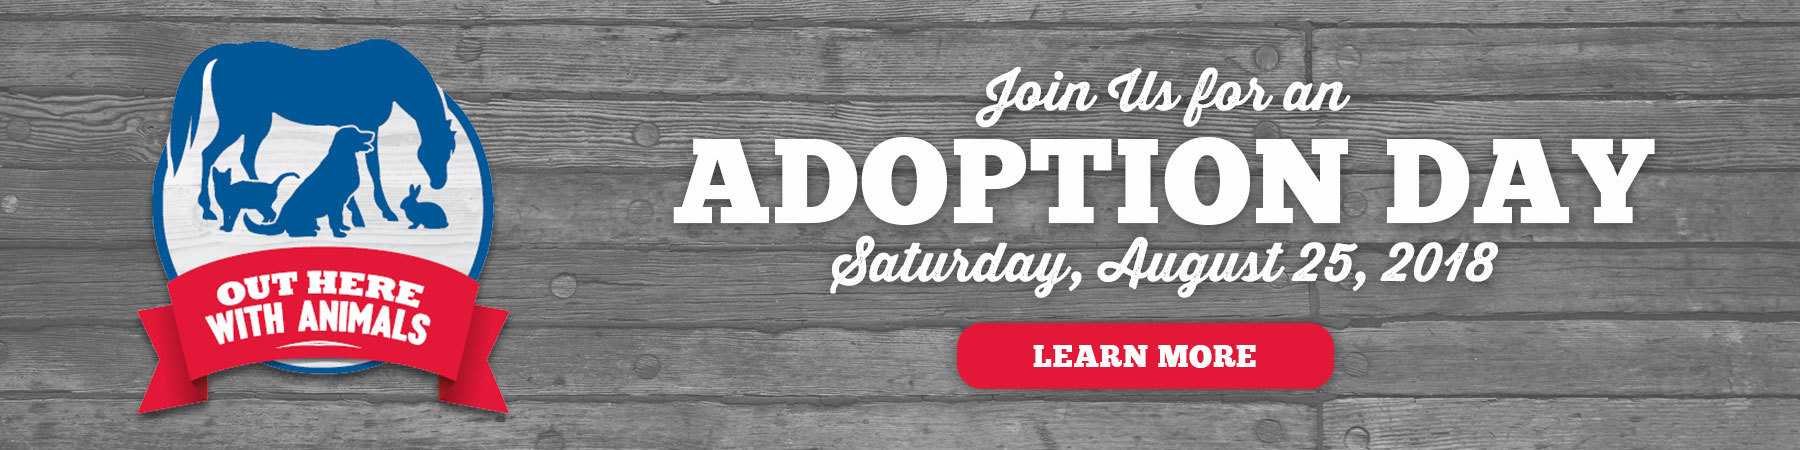 event-partners-adoption-day-18-banner.jpg